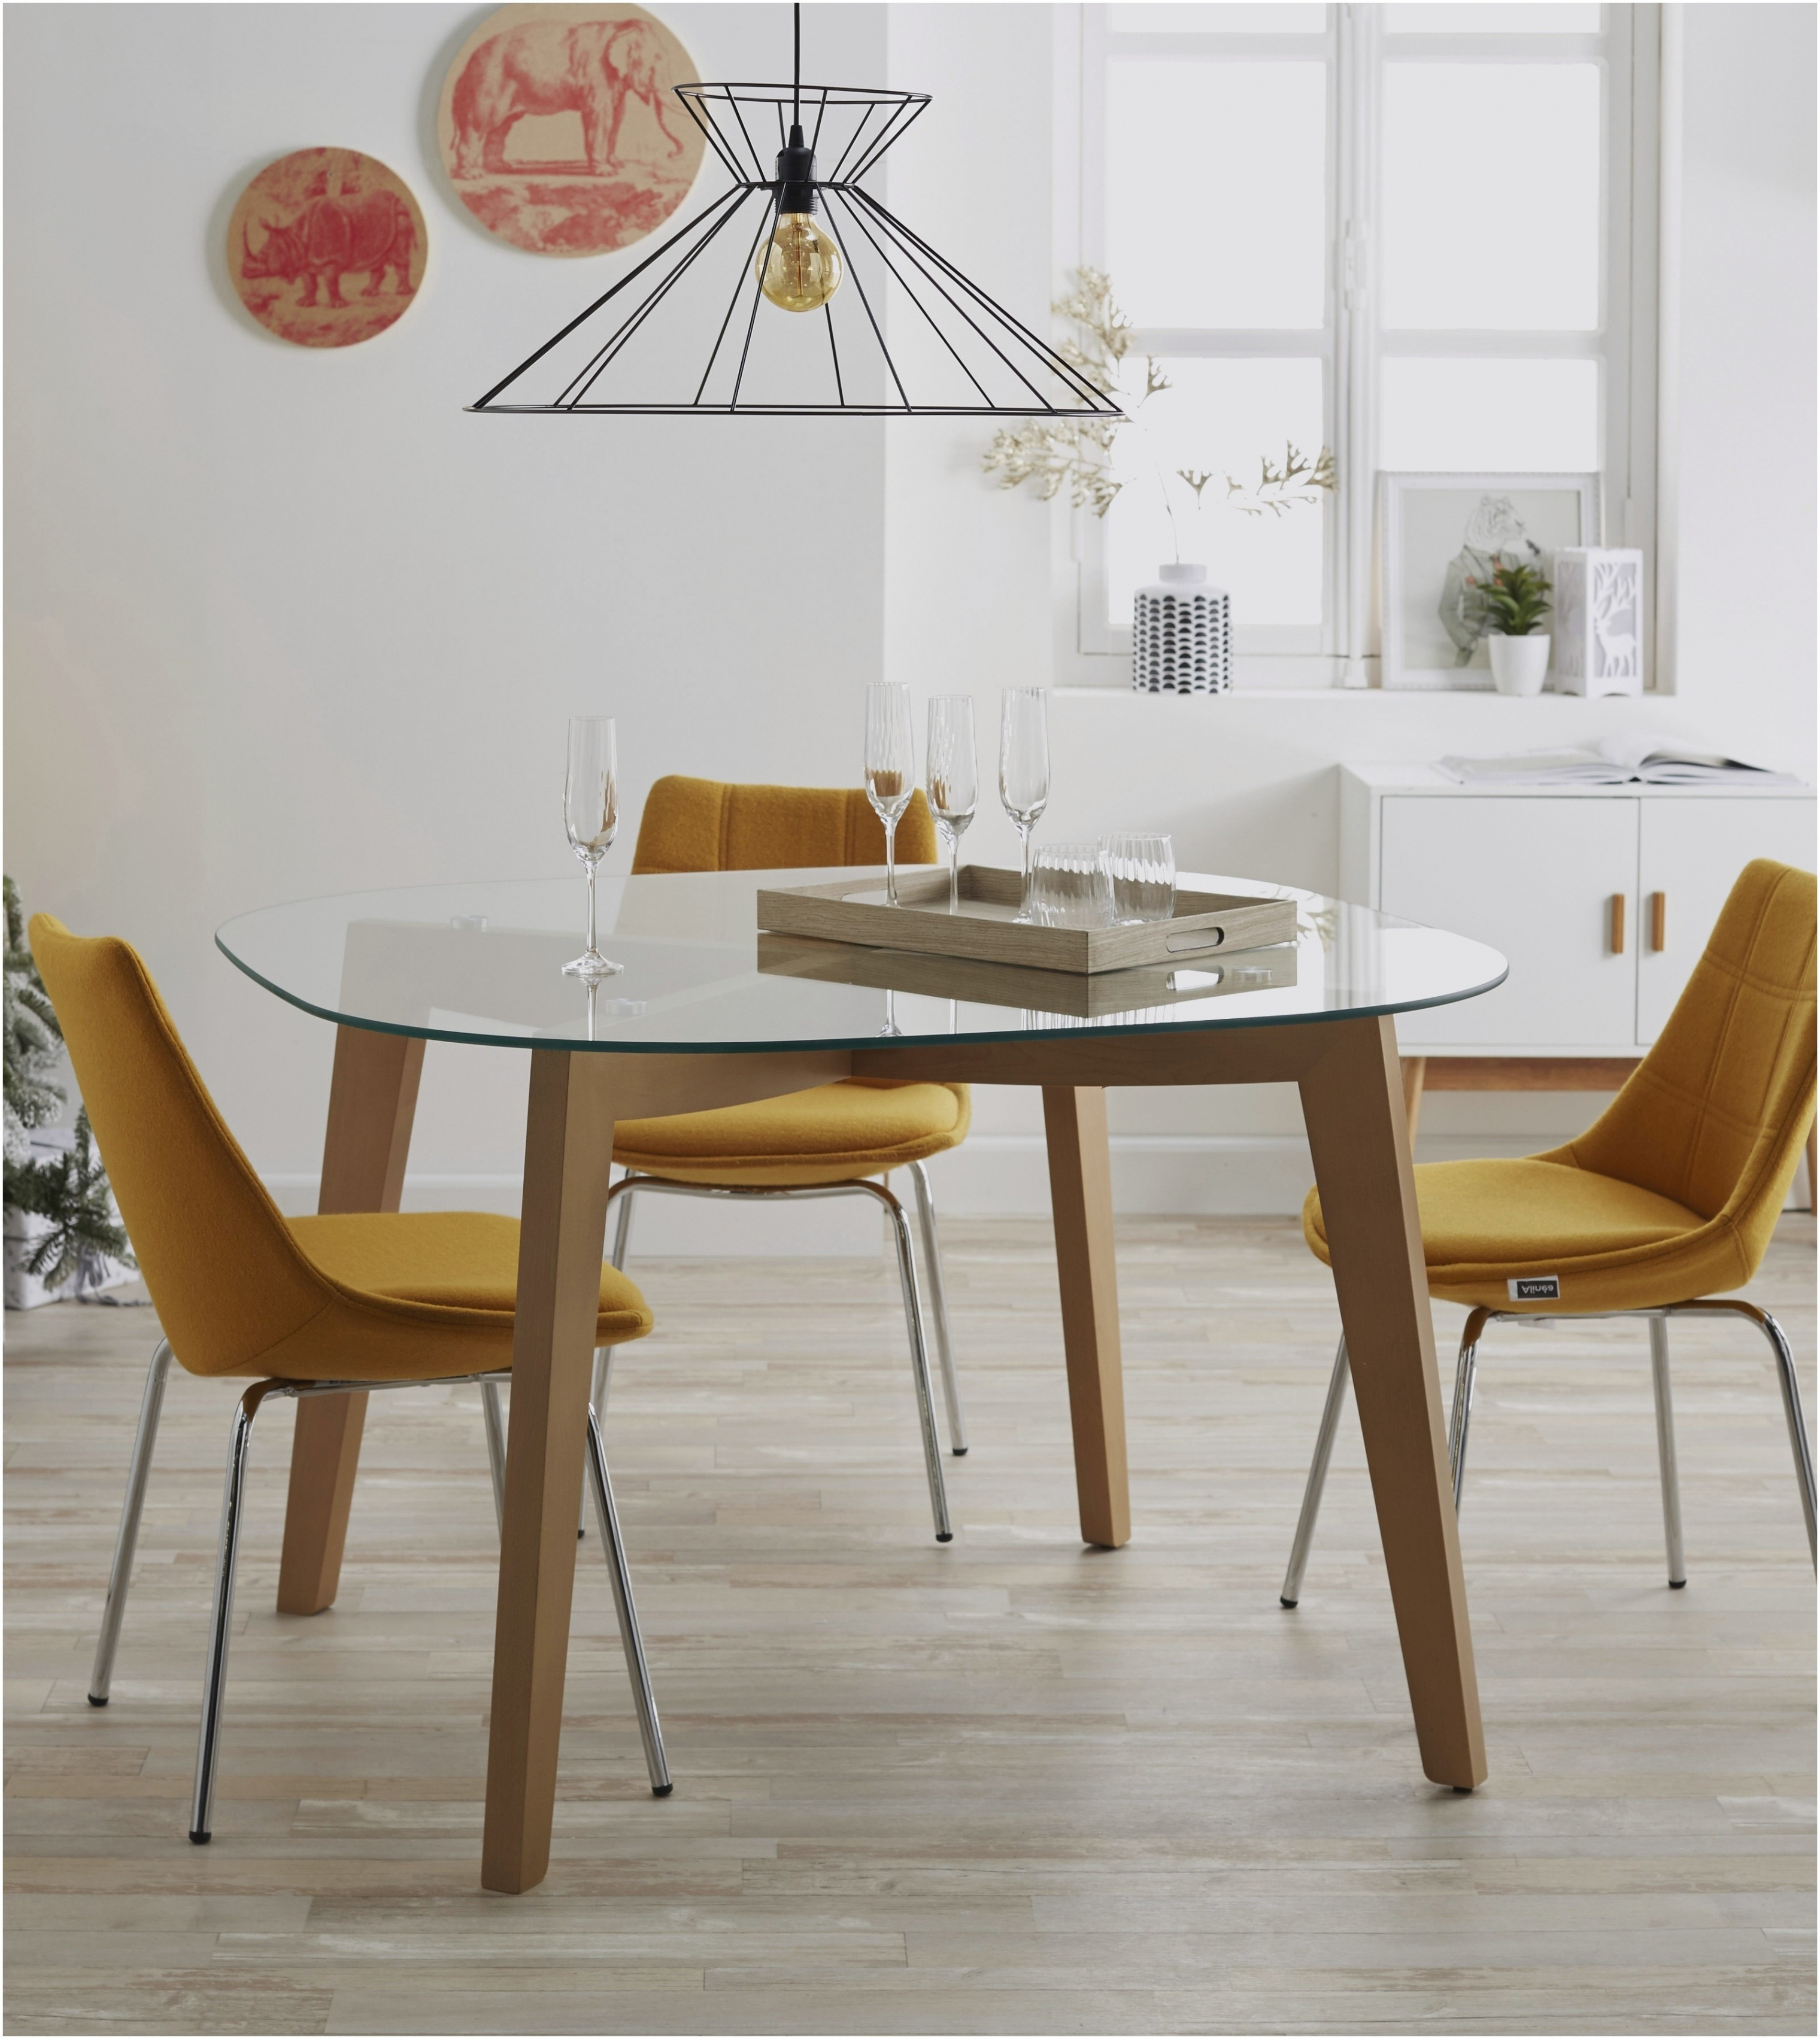 Chaises Scandinaves Conforama Chaise Salle A Manger Scandinave Mikea Galerie